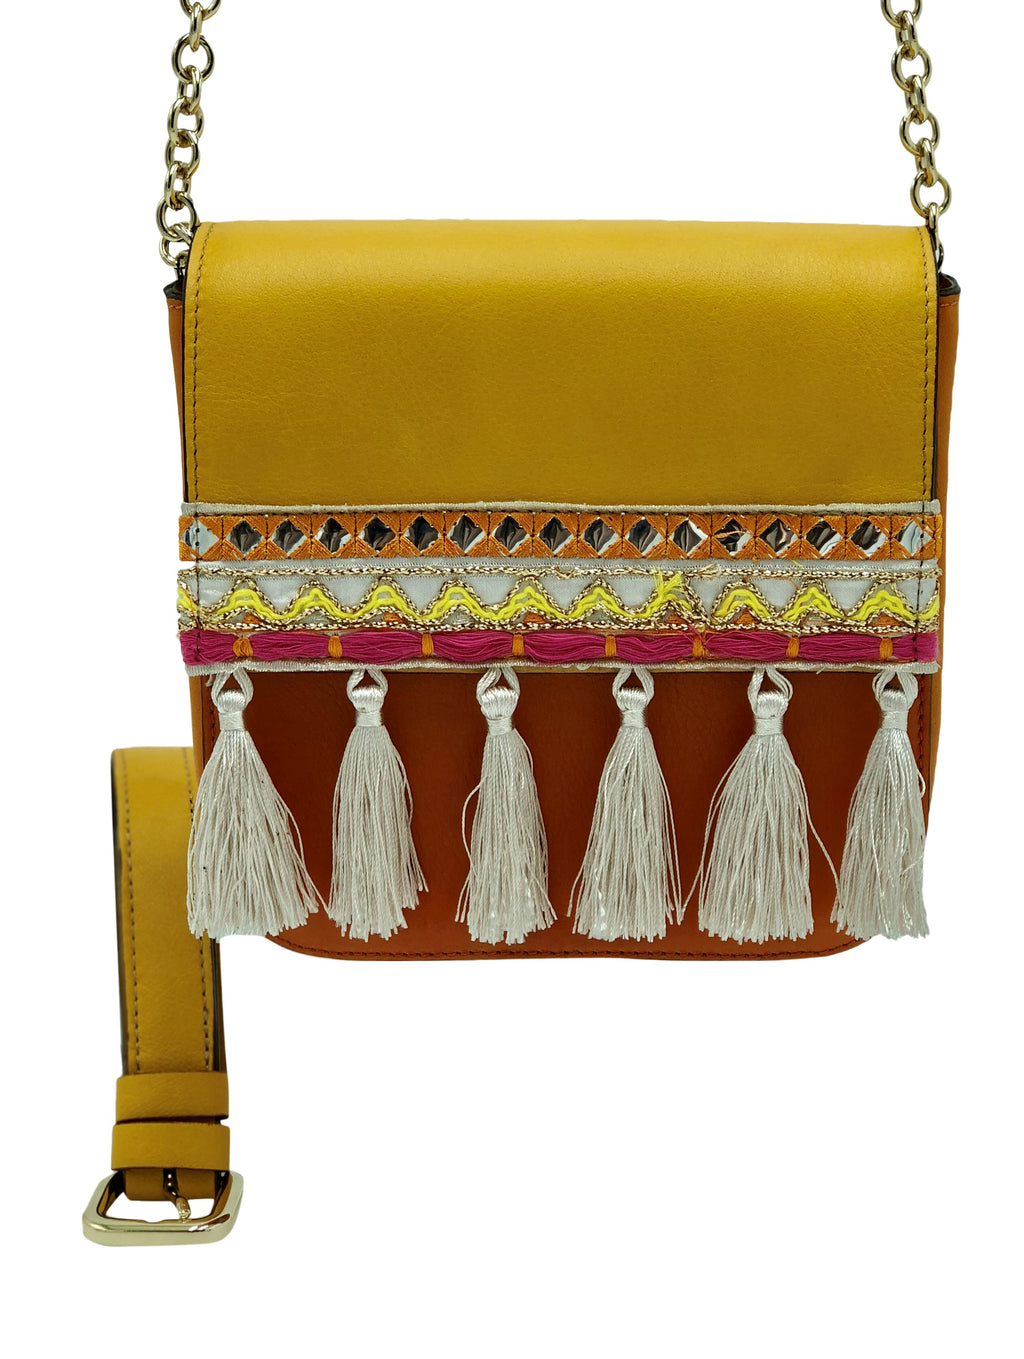 Yellow & Orange leather bag with tassels